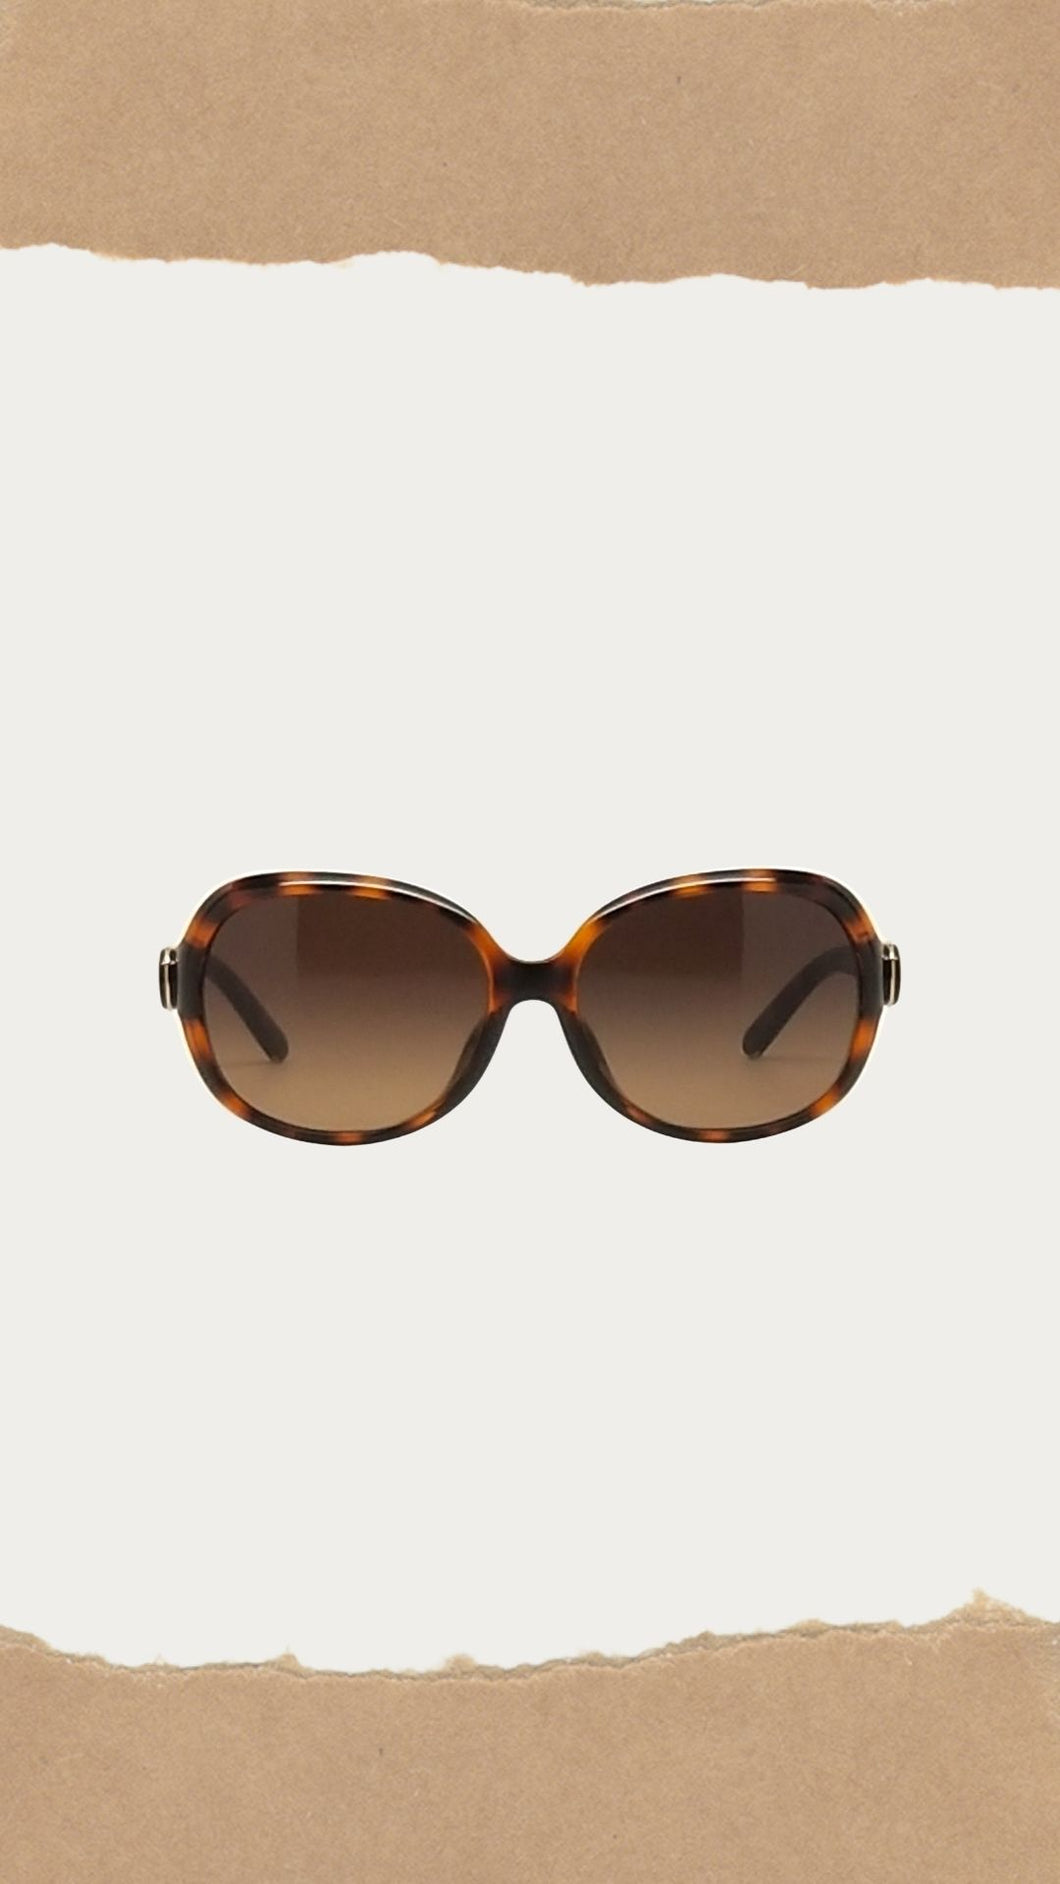 Brown Tortoise Print Sunglasses